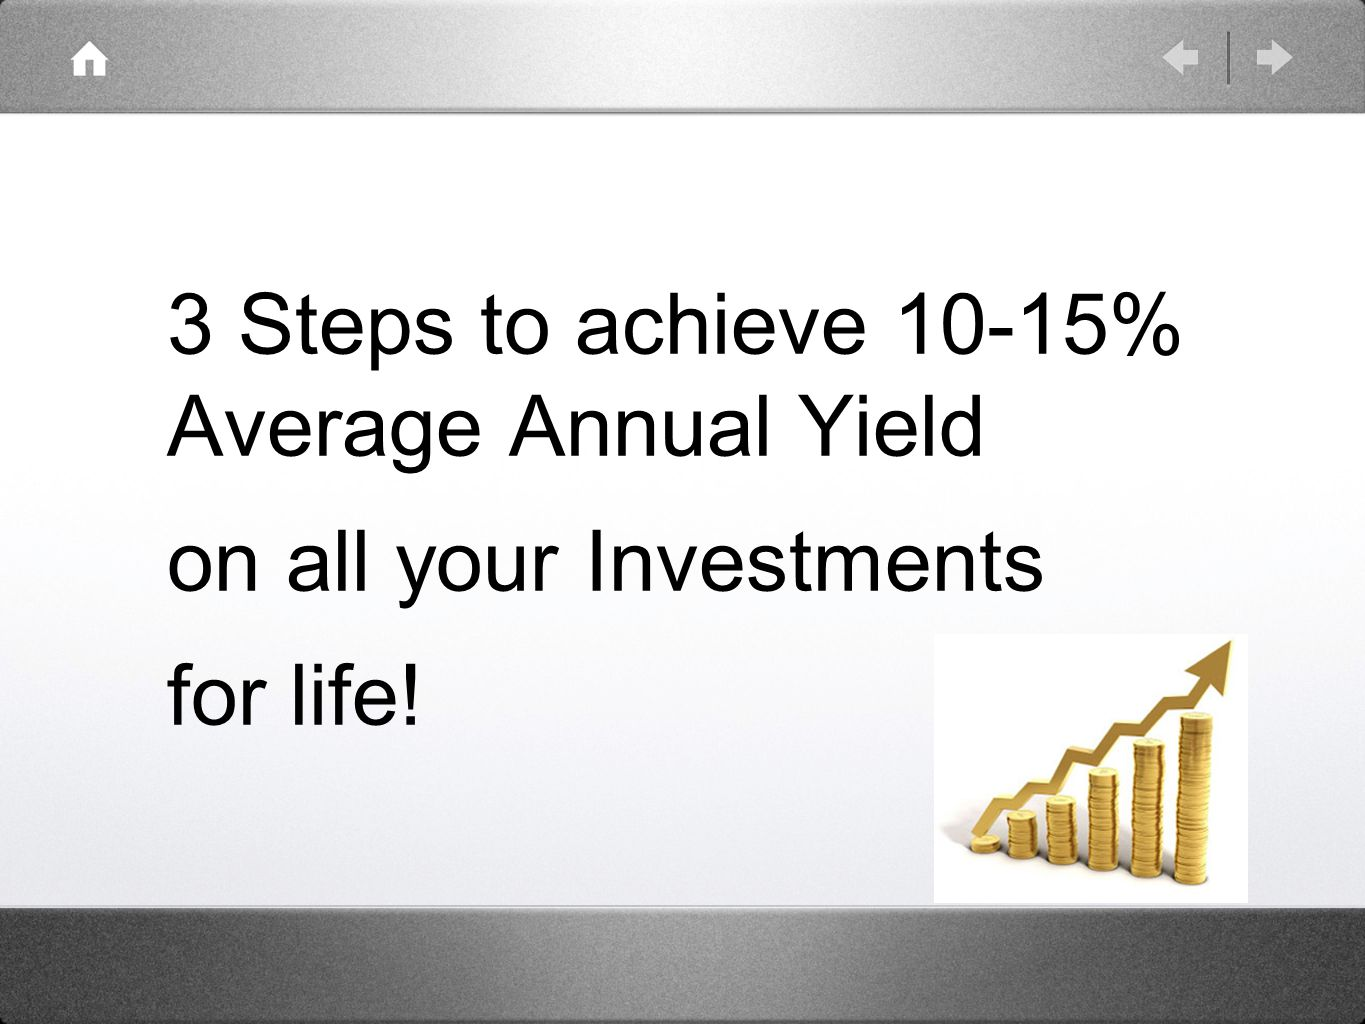 3 Steps to achieve 10-15% Average Annual Yield on all your Investments for life!